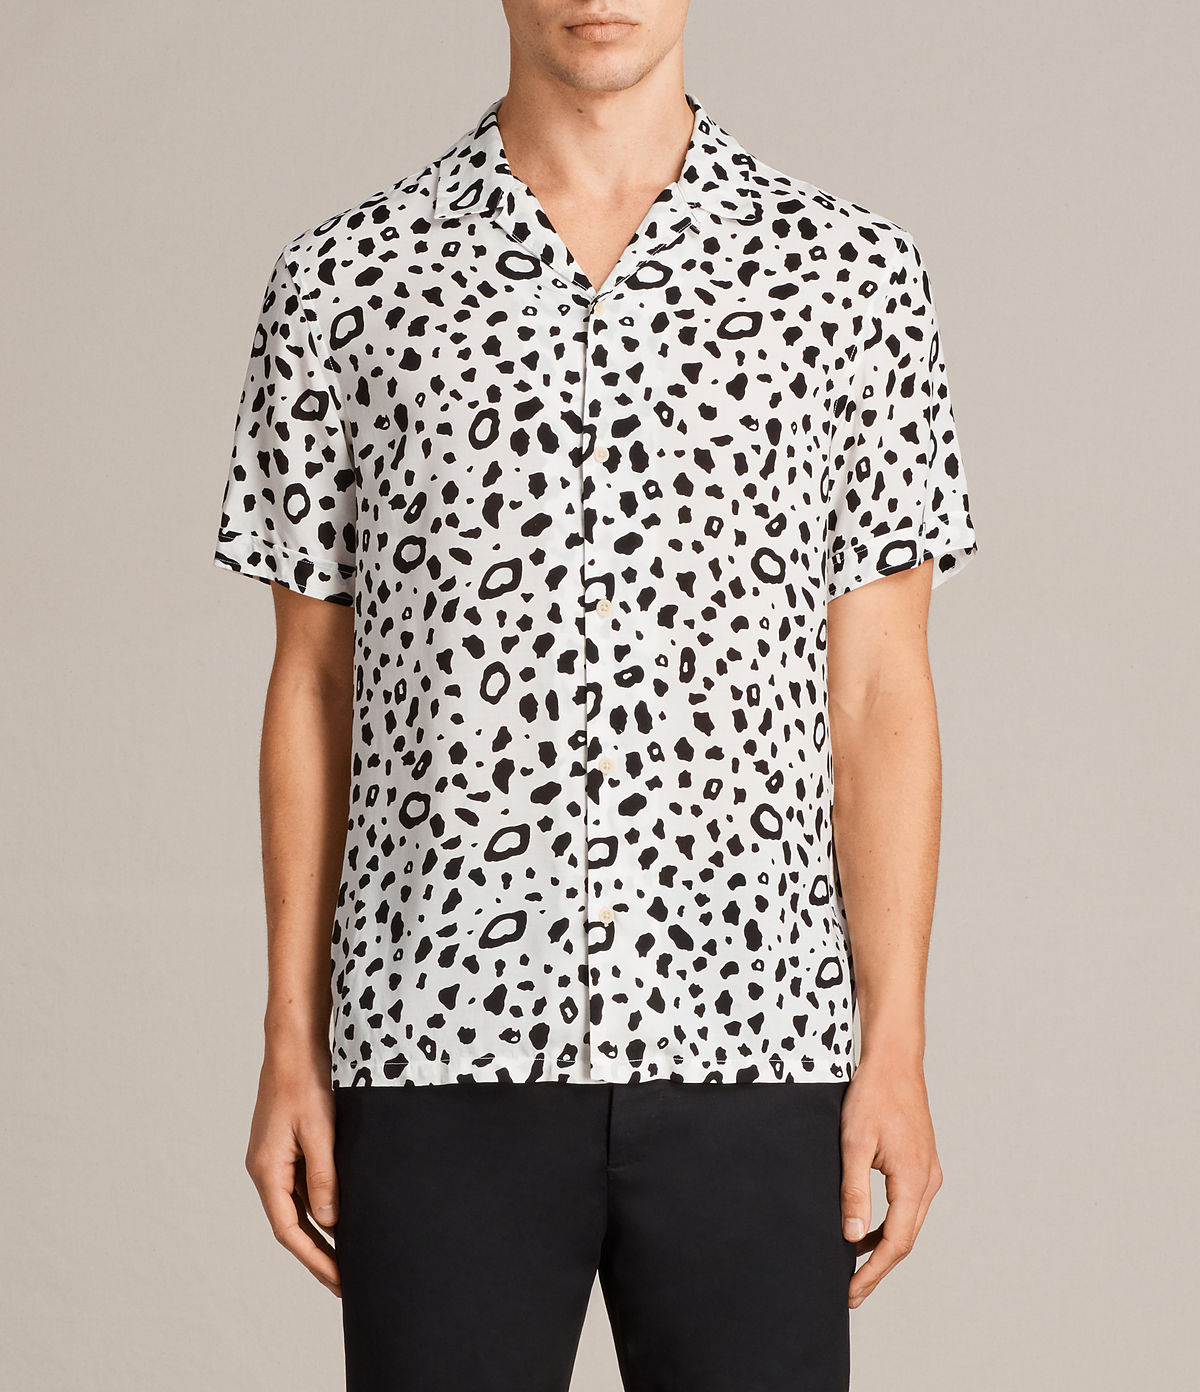 panther-short-sleeve-shirt